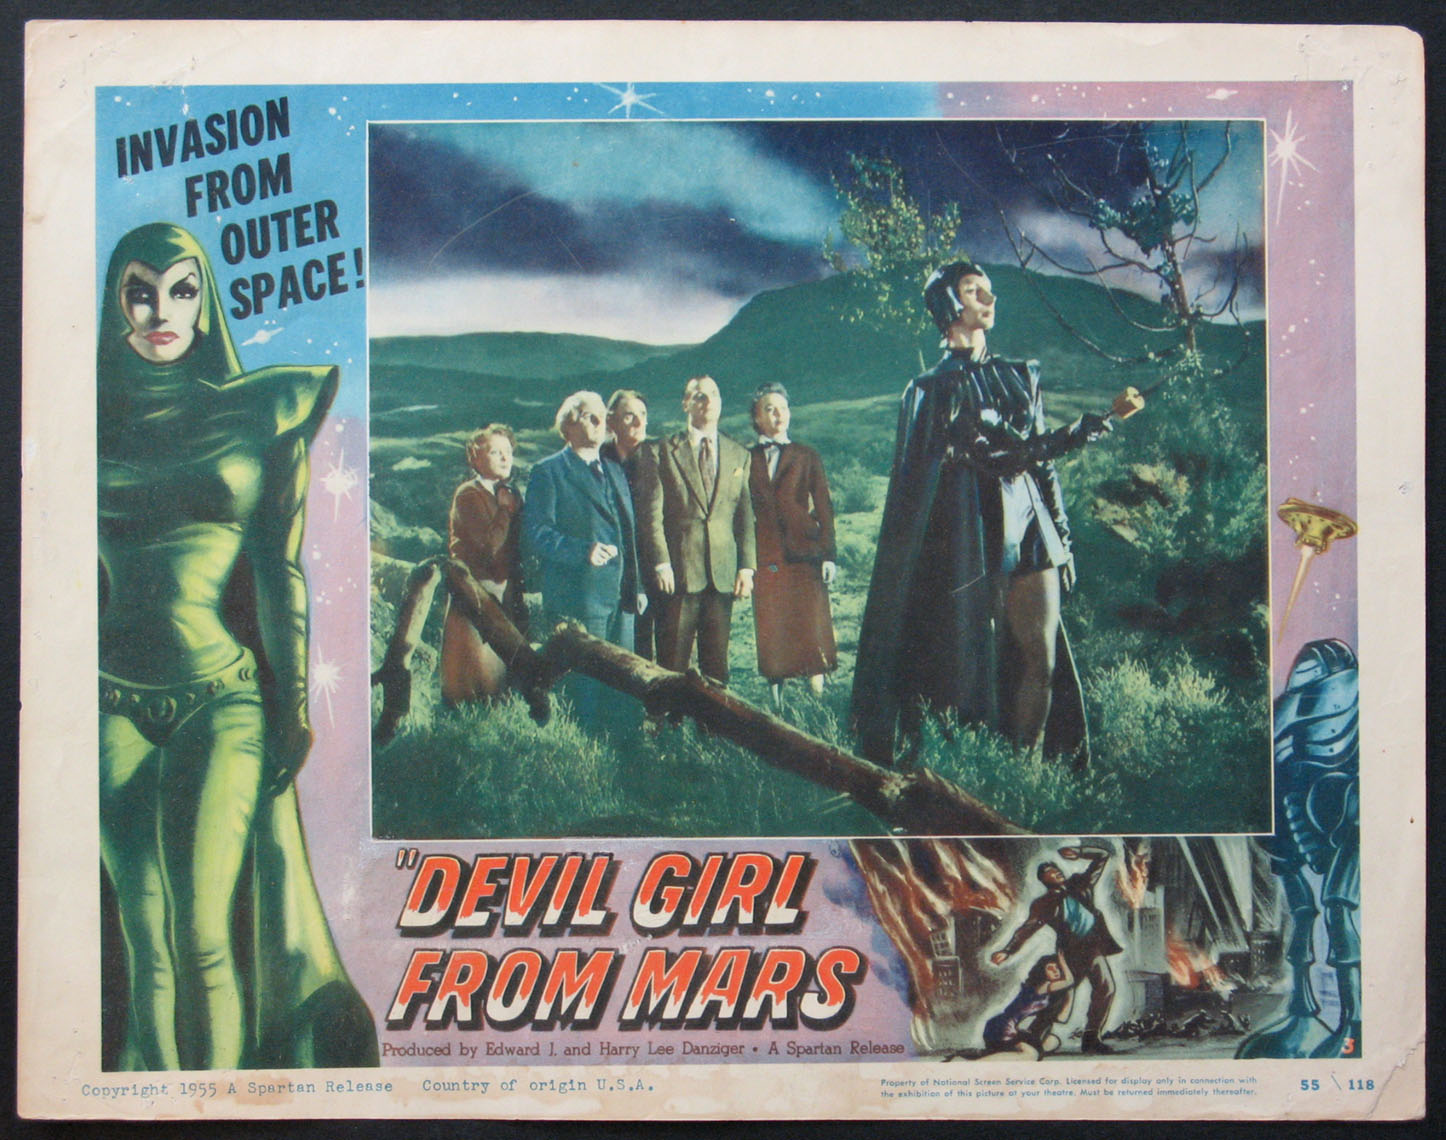 DEVIL GIRL FROM MARS @ FilmPosters.com